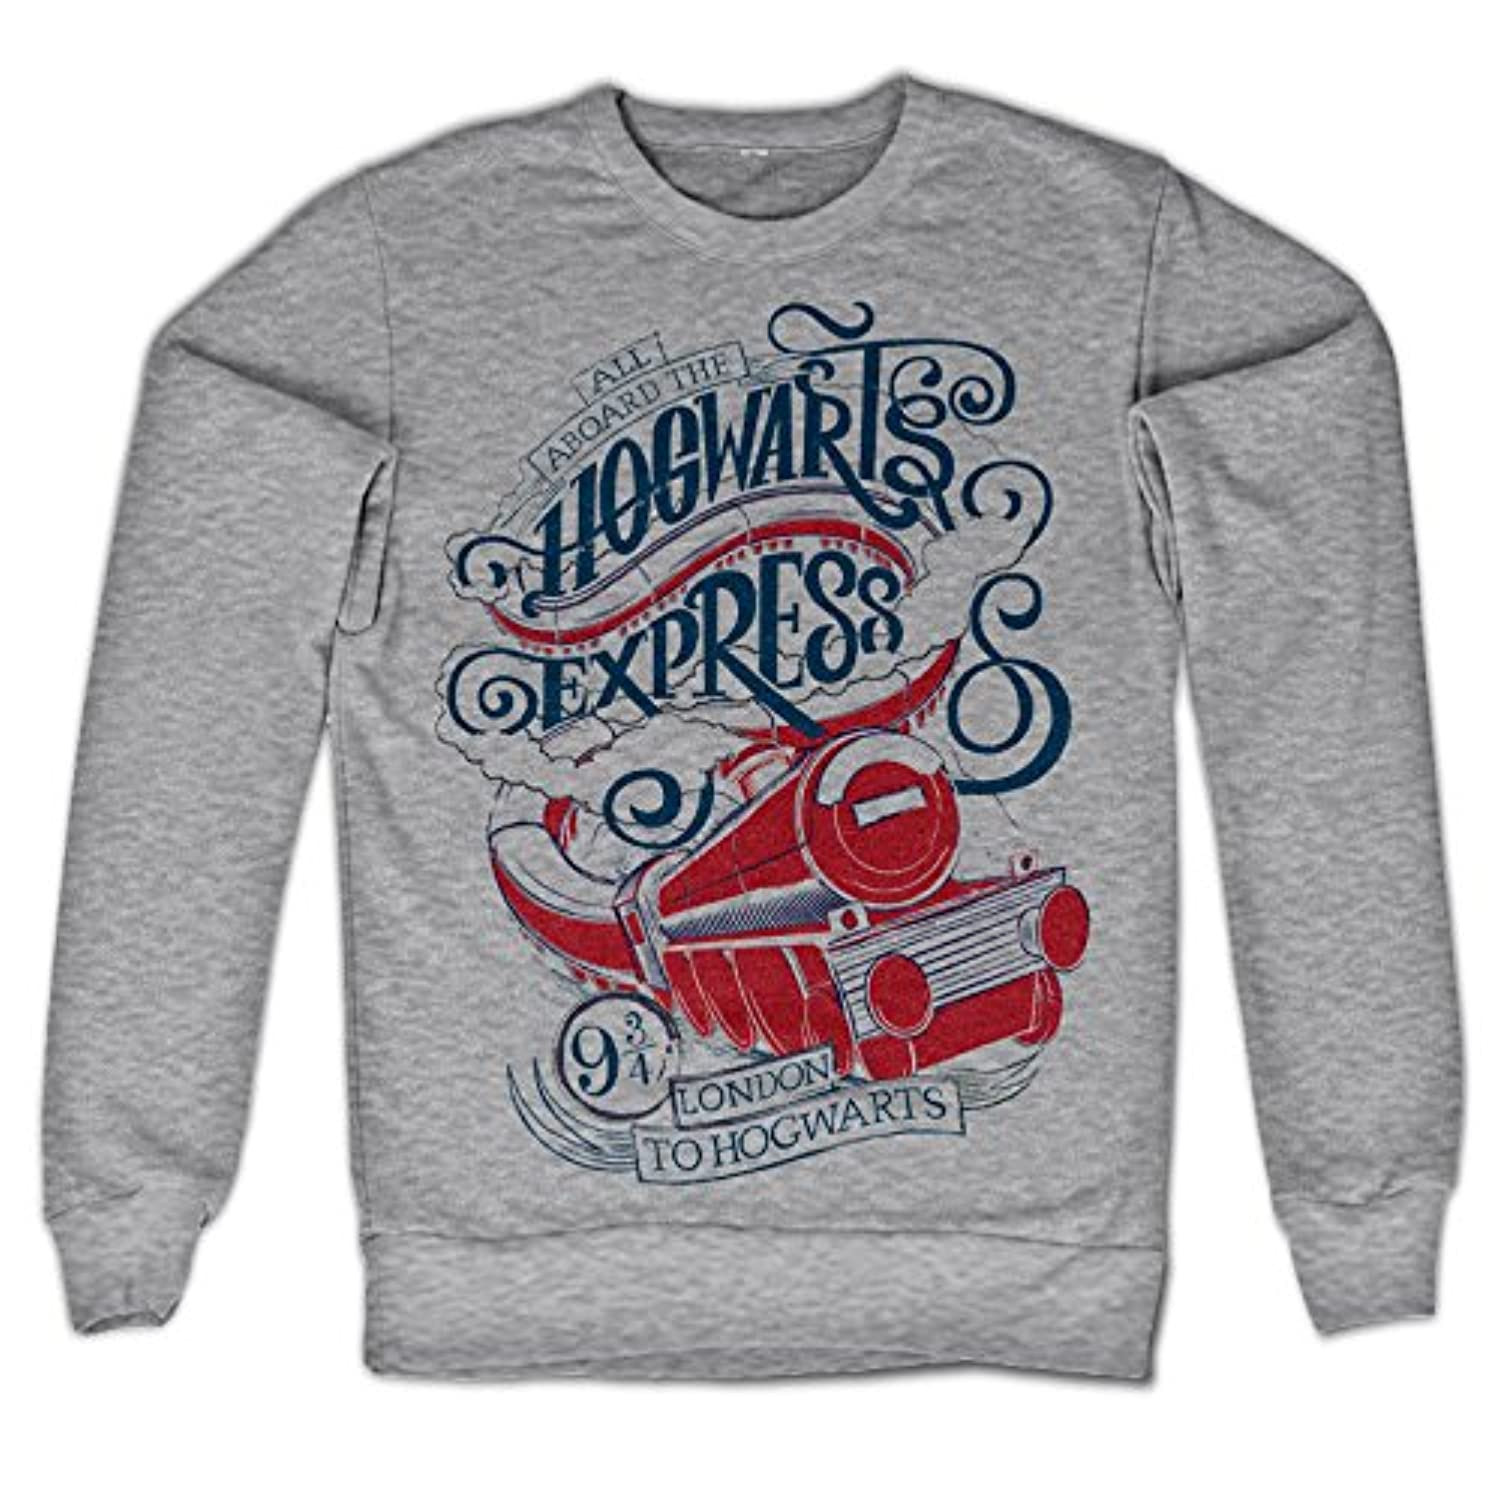 Officially Licensed Inked All Aboard The Hogwarts Express Sweatshirt (Heather Grey)